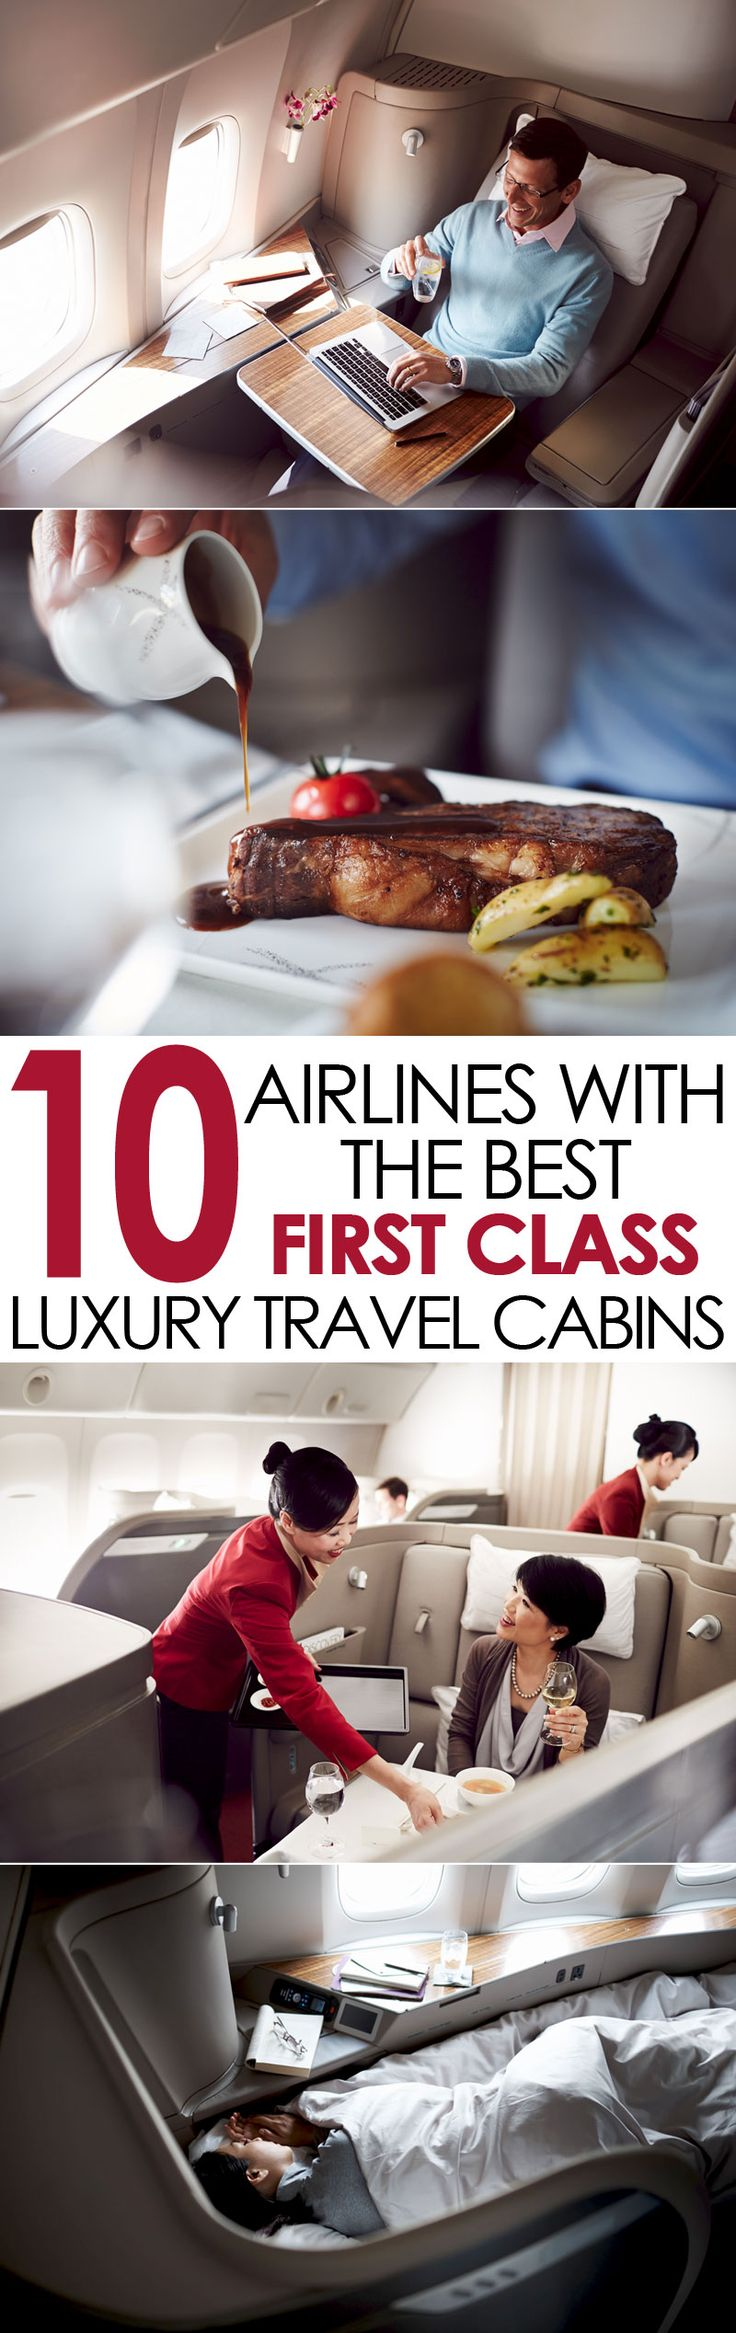 10 airlines with the best first class luxury travel cabins